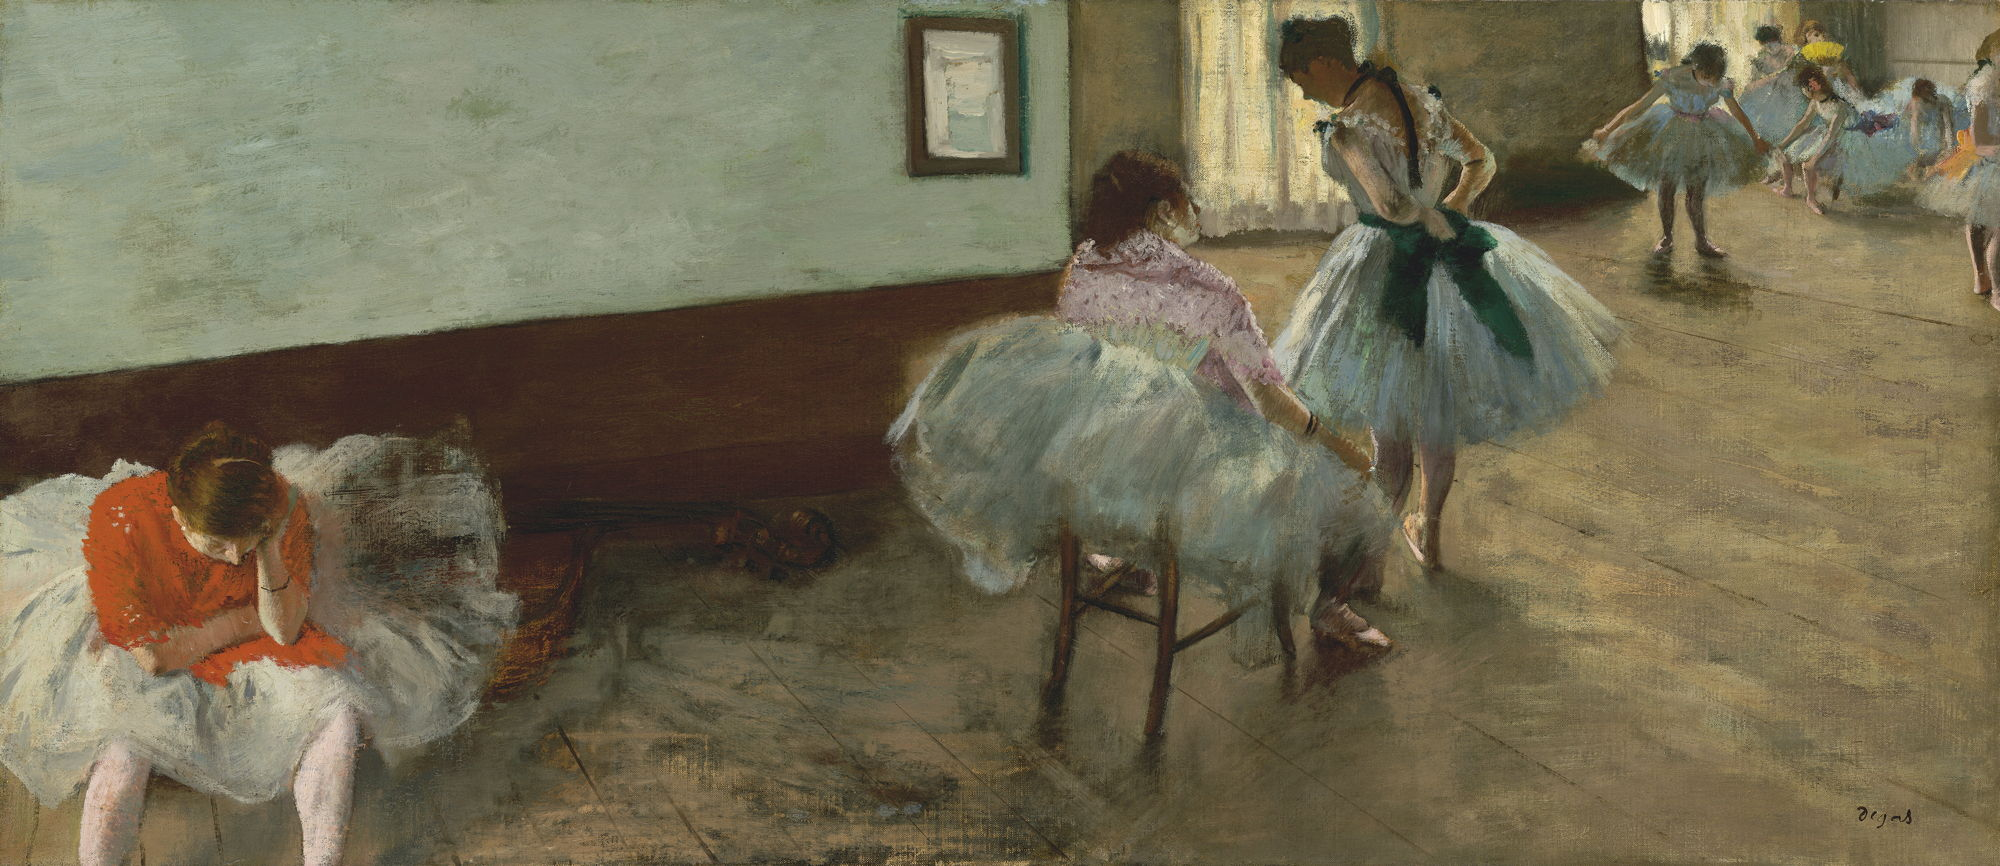 edgar degas man the myth the Edgar degas, man the myth the artist this research paper edgar degas, man the myth the artist and other 64,000+ term papers, college essay examples and free essays are available now on reviewessayscom autor: review • december 9, 2010 • research paper • 656 words (3 pages) • 669 views.